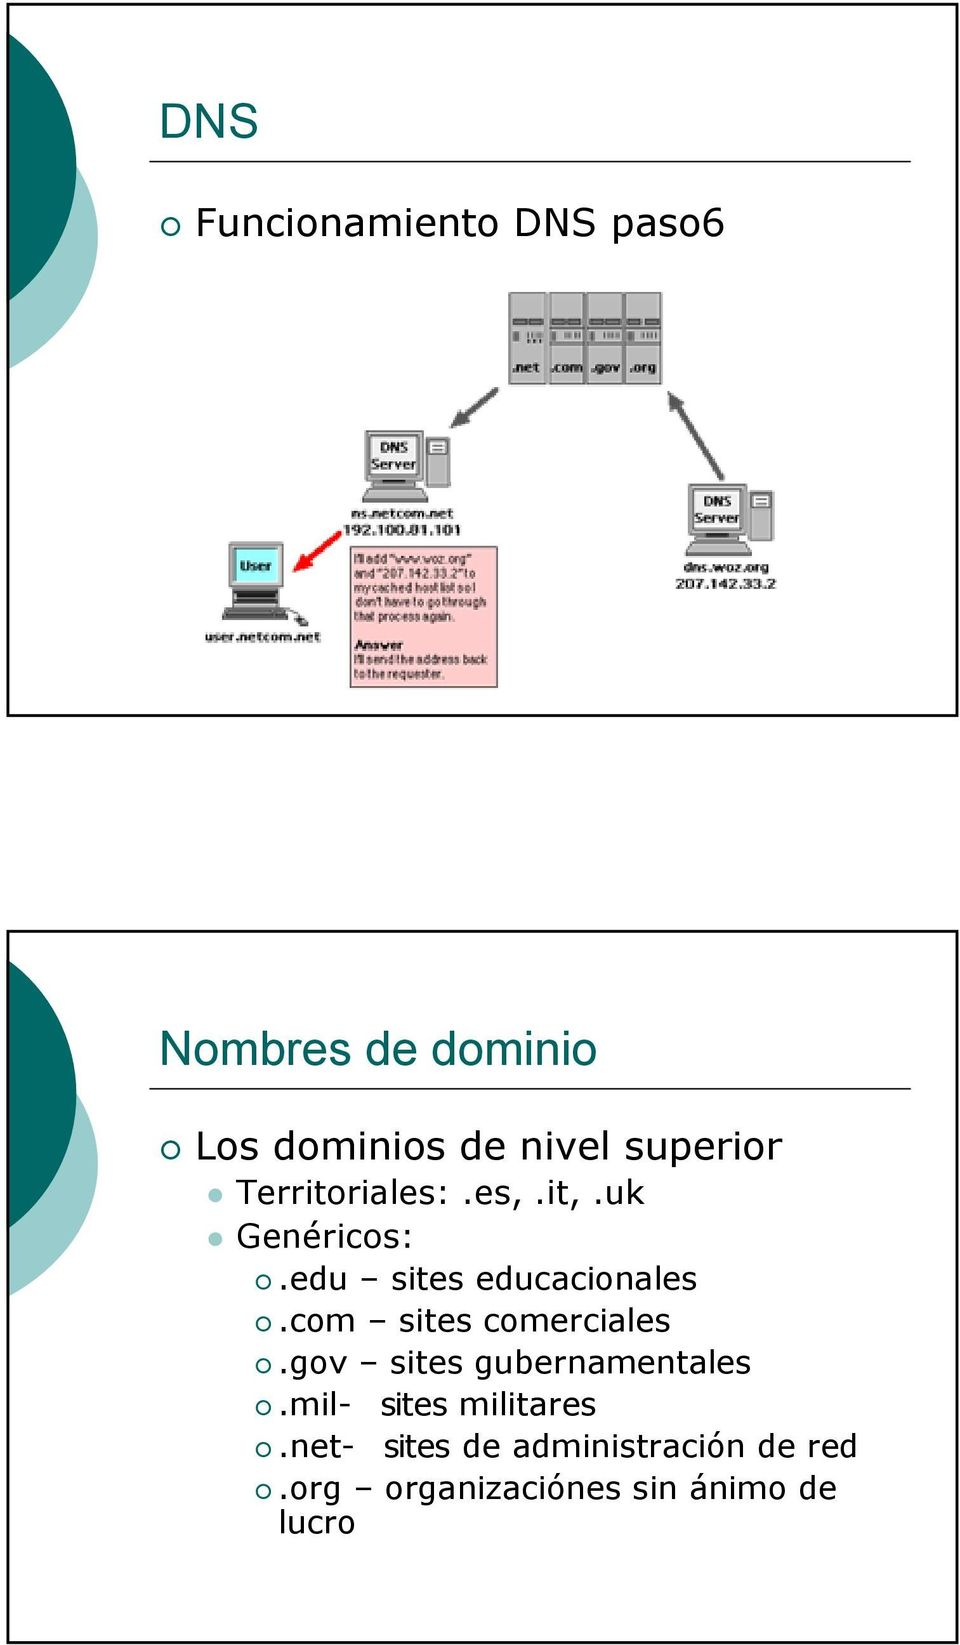 com sites comerciales.gov sites gubernamentales.mil- sites militares.